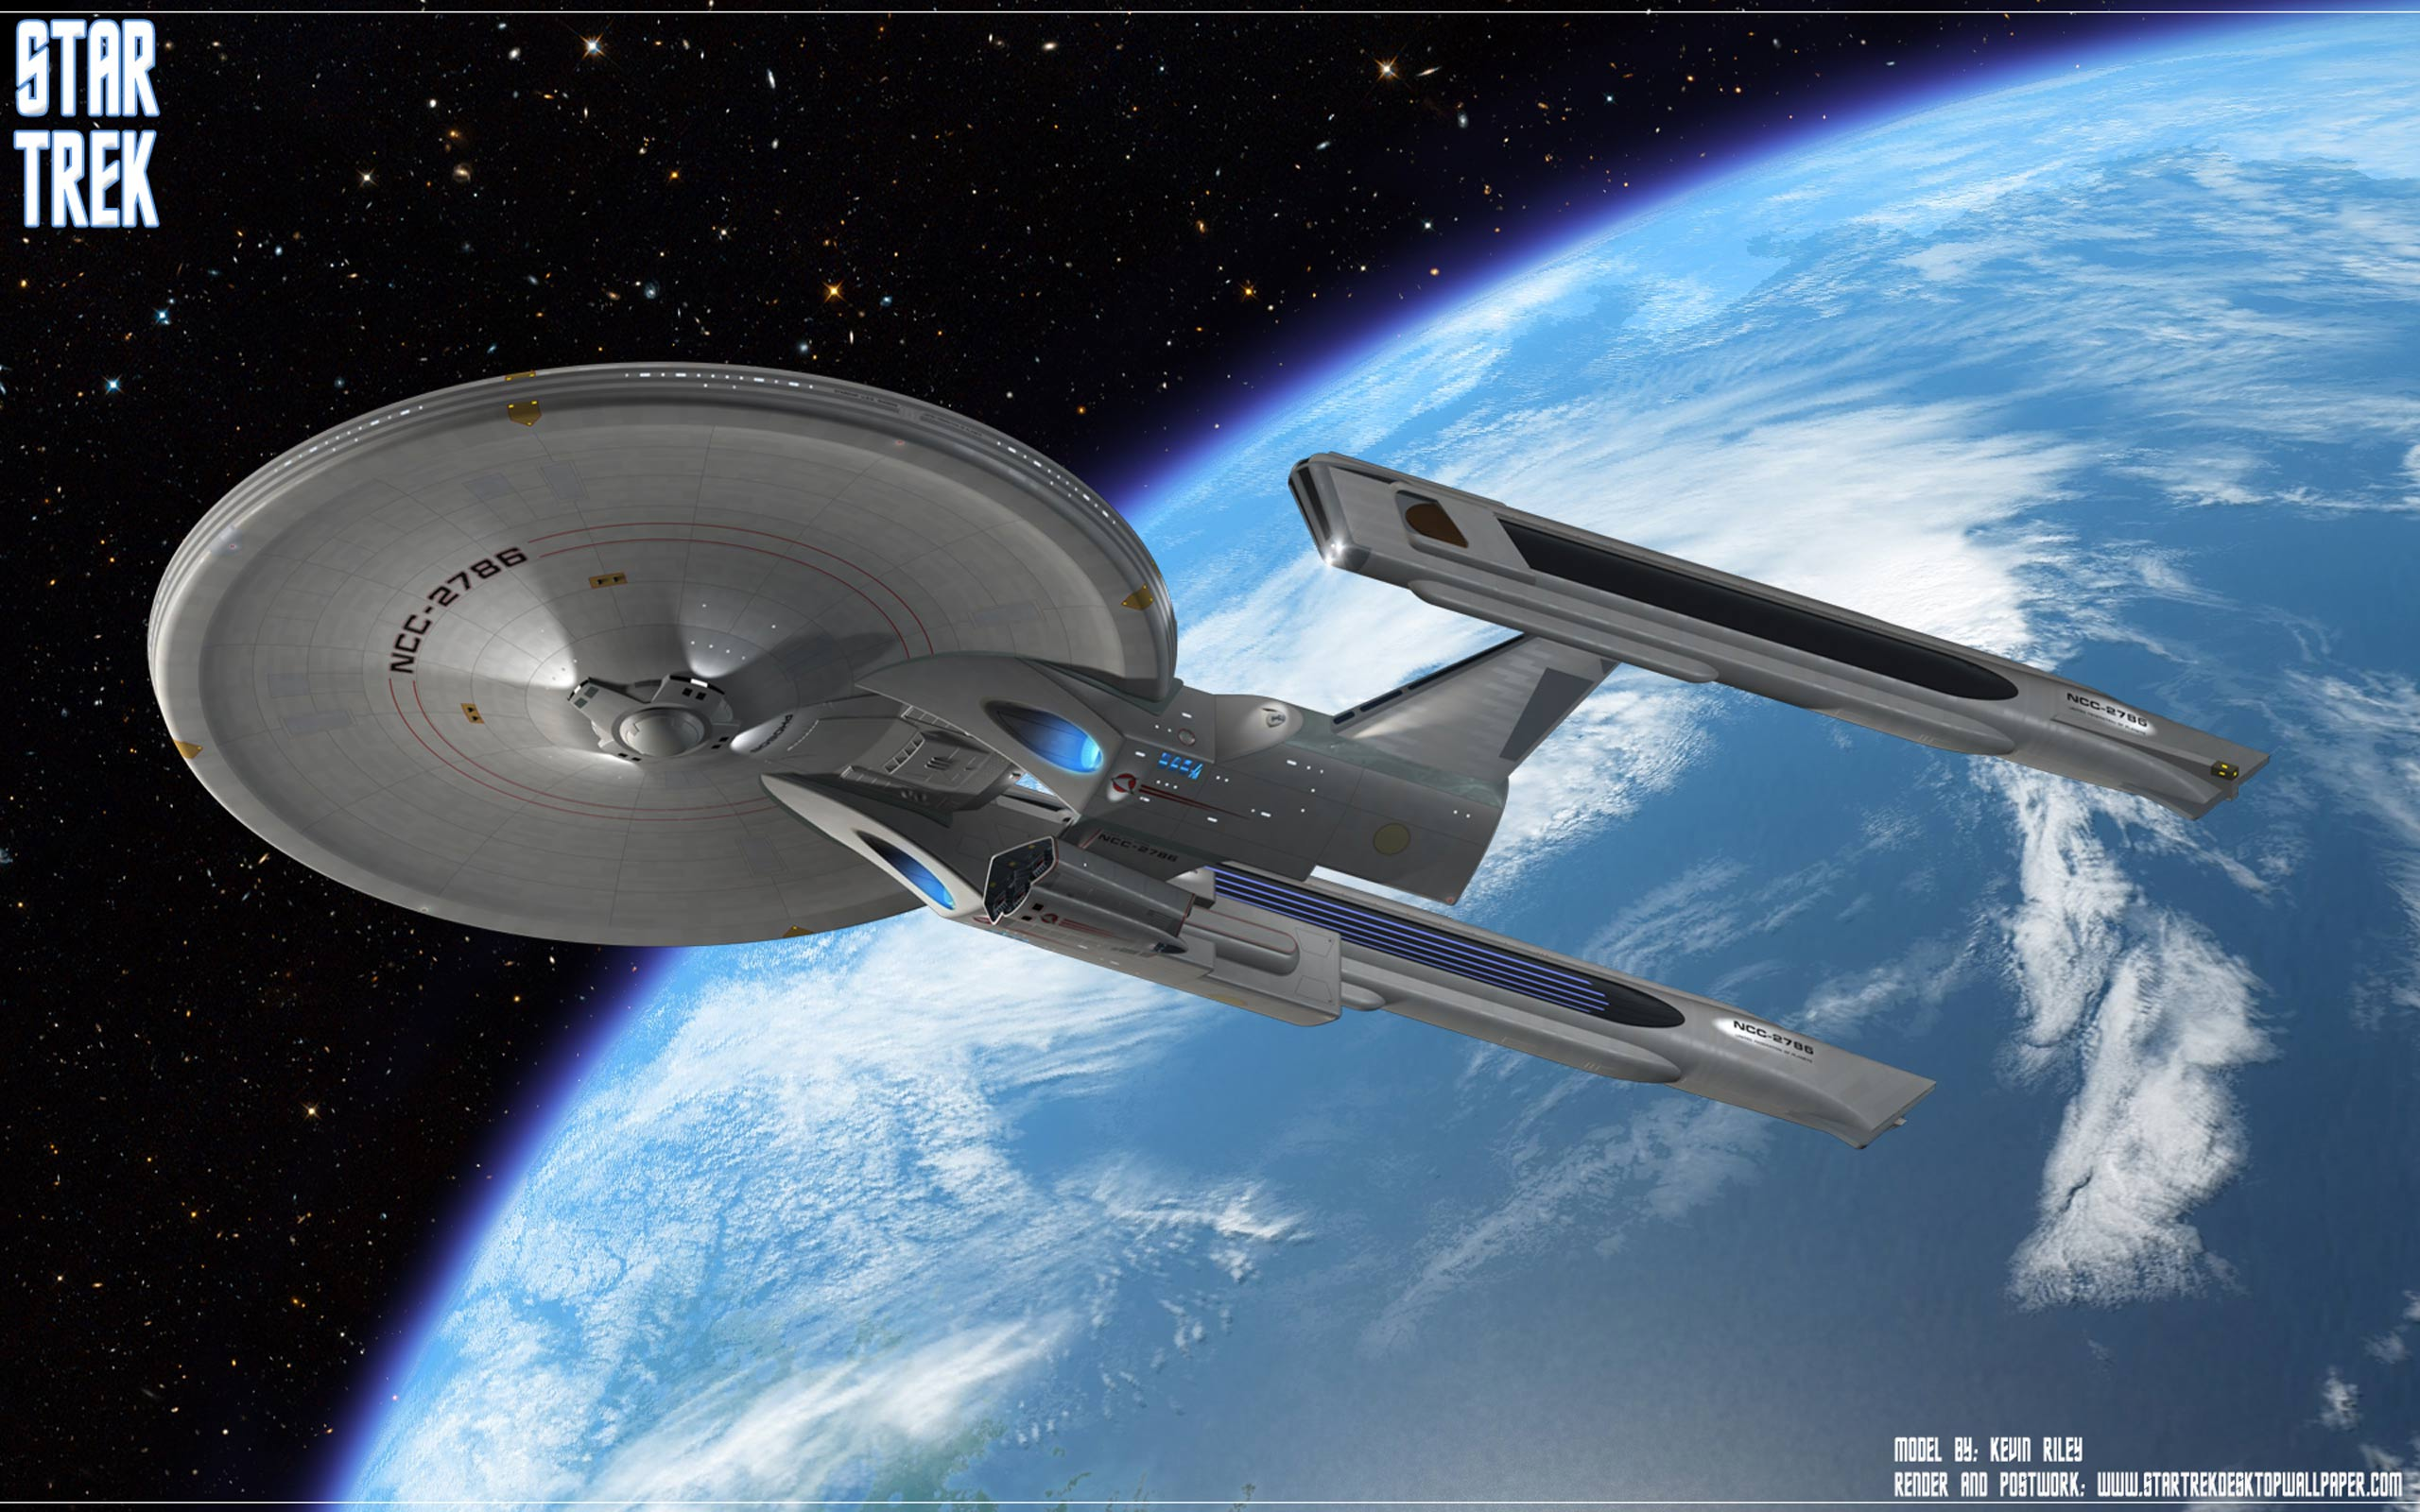 Star Trek Ships Trek Star Trek Ships And 2560x1600